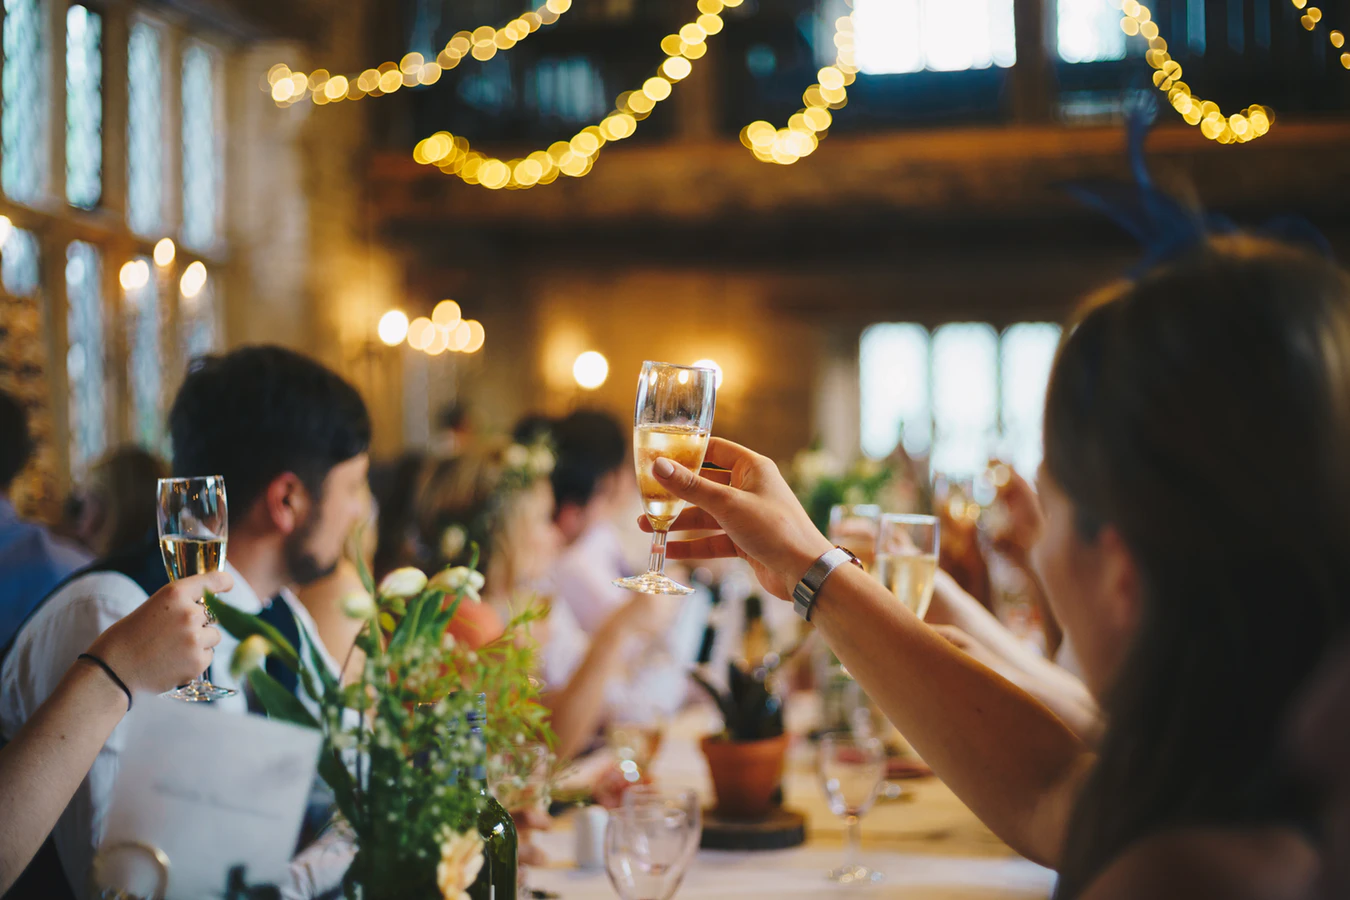 Guests raise their glasses at a wedding reception